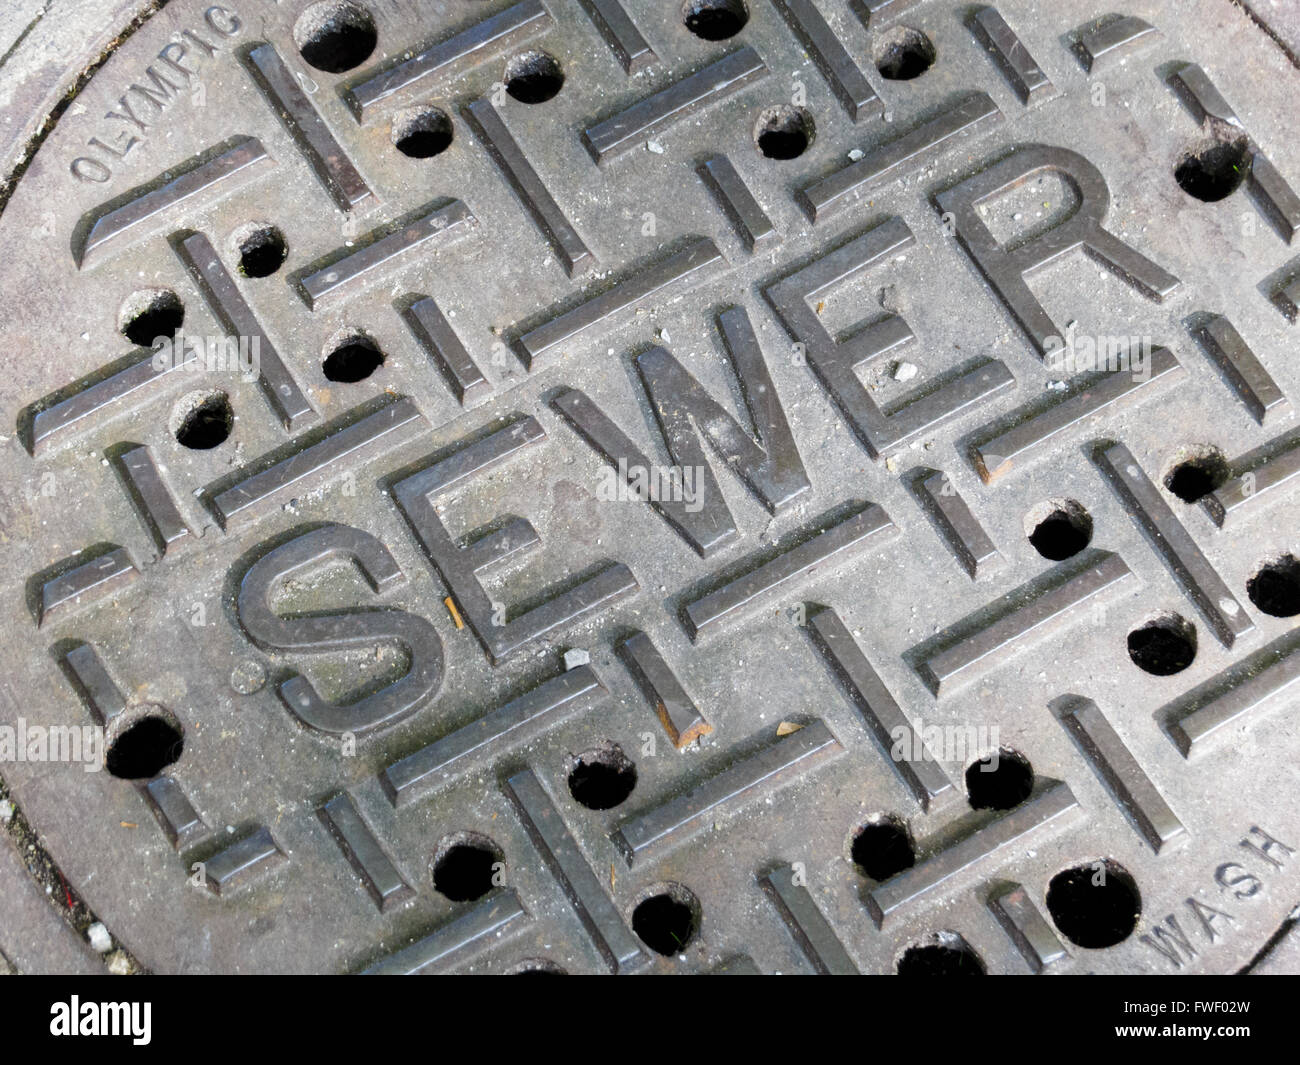 Sewer drain cover - Stock Image